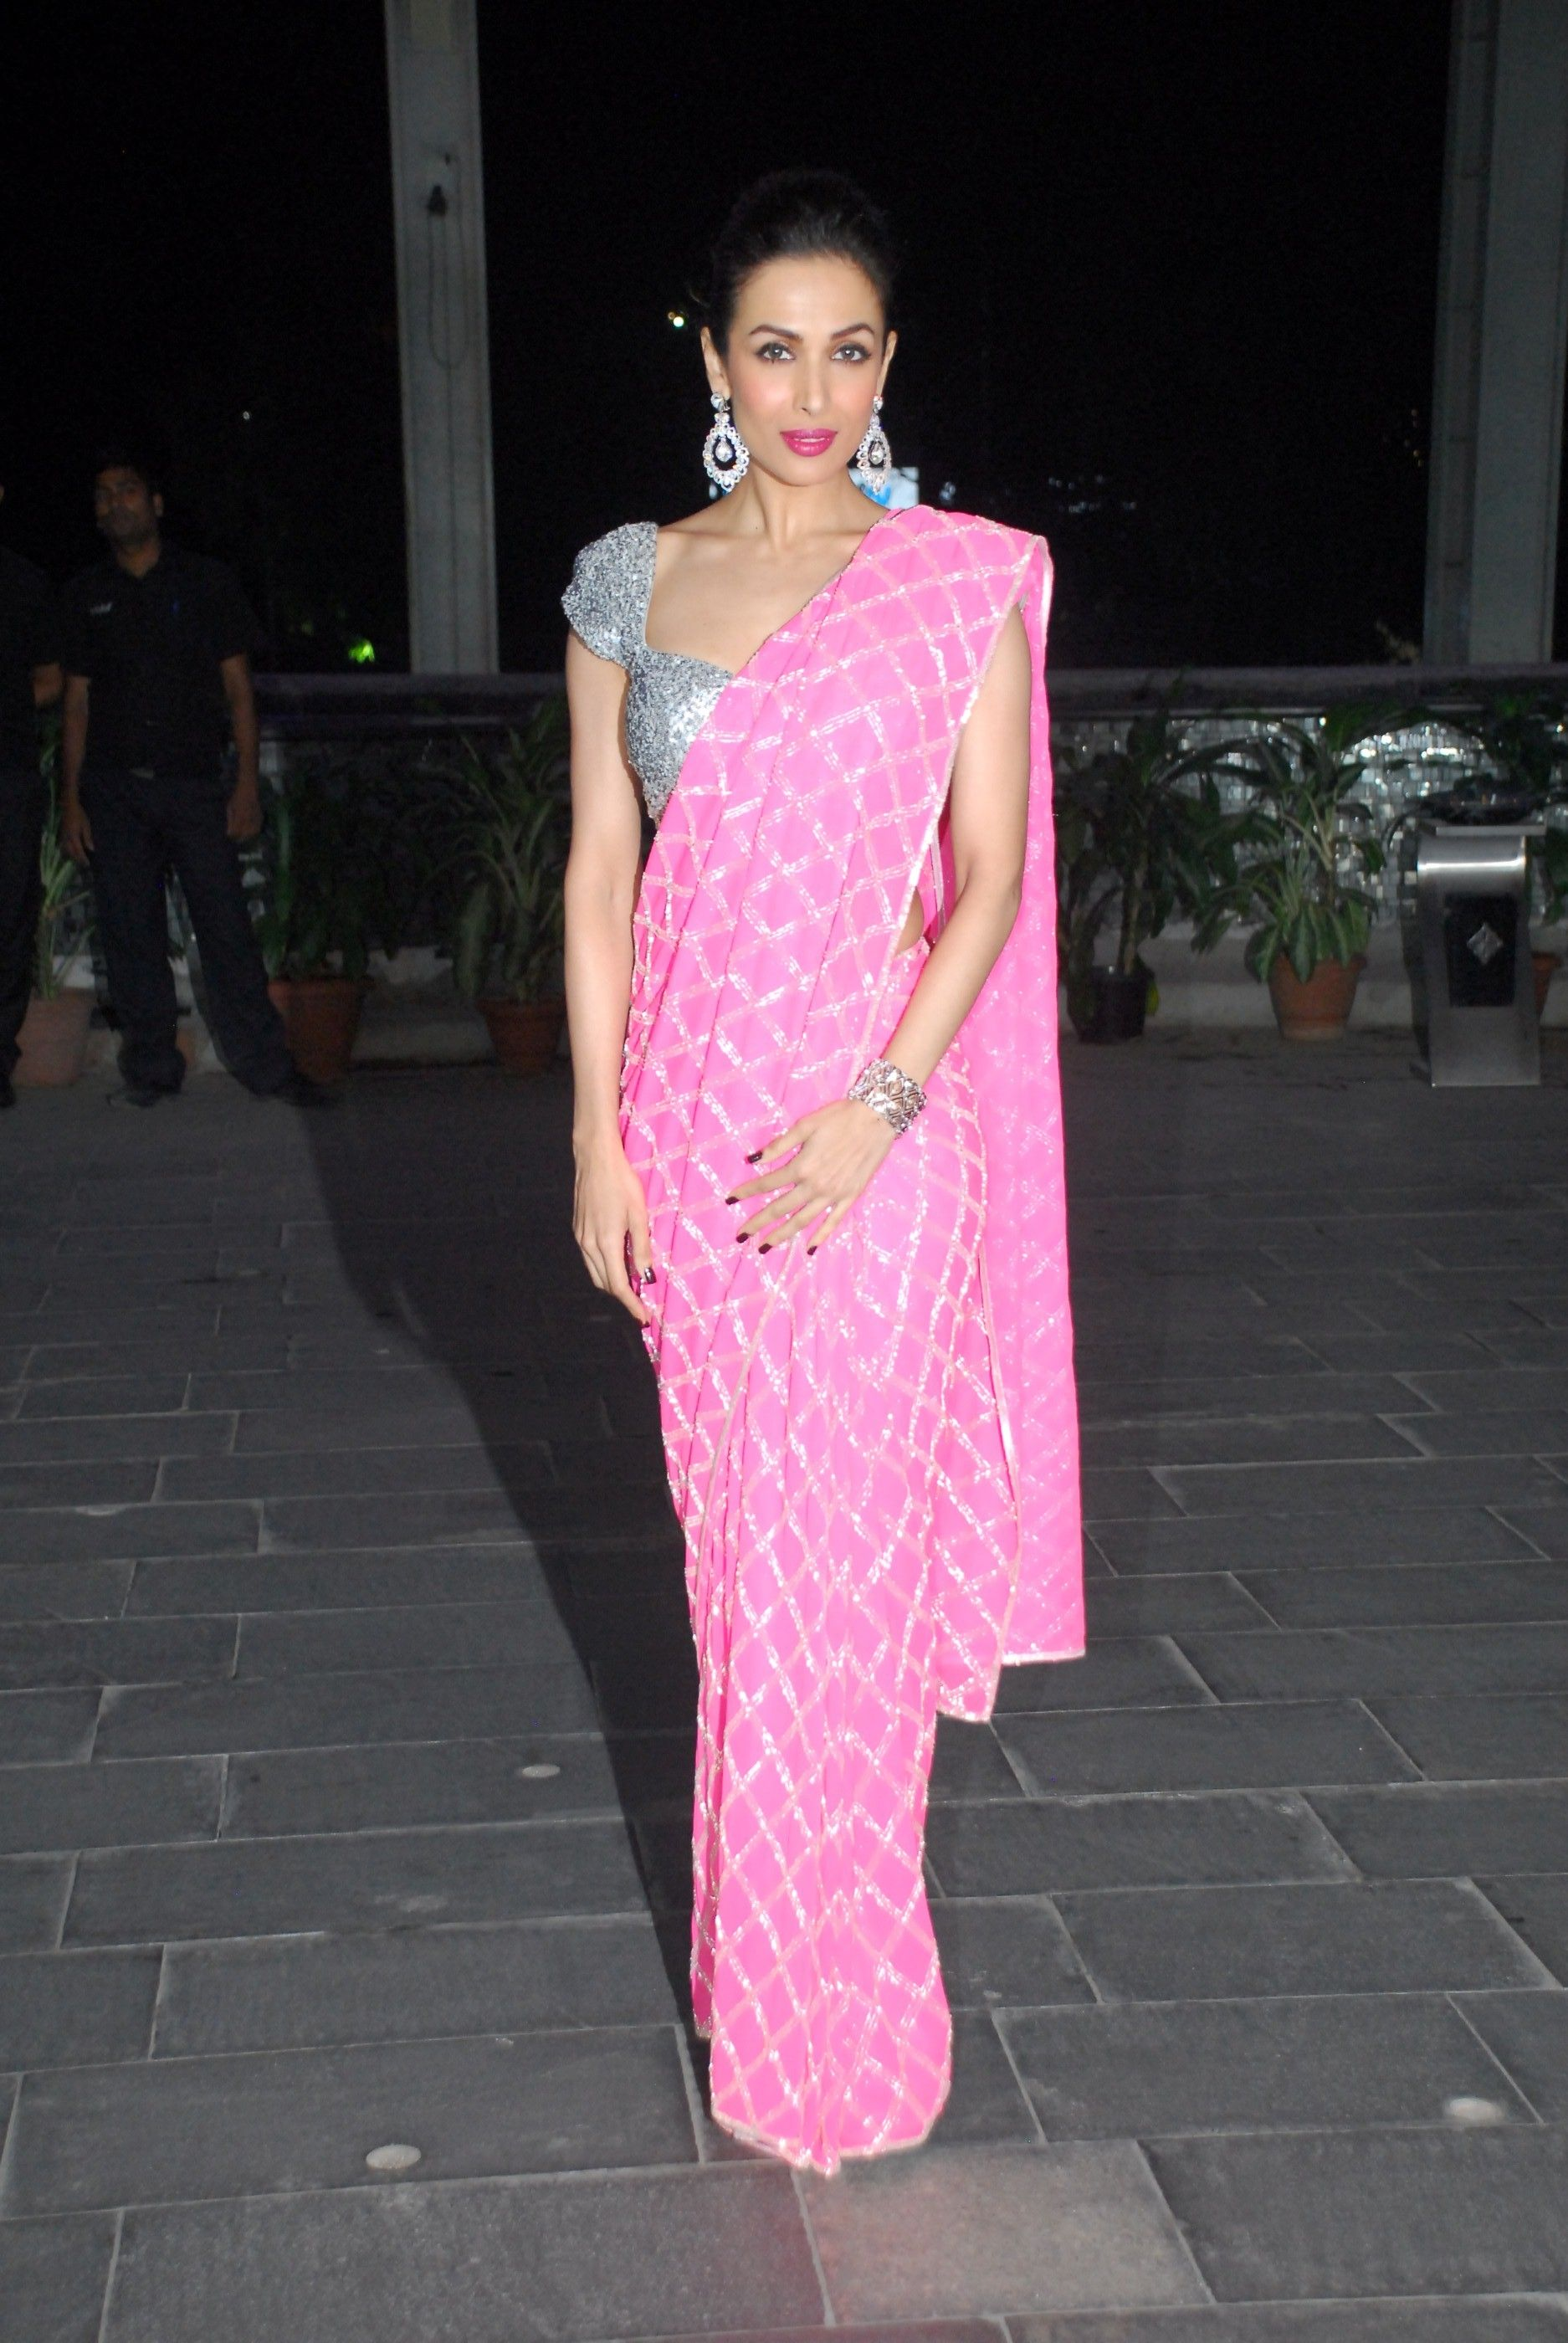 94161e935952b8 Beautiful in Pink & Silver #Saree & Blouse Malaika Arora Khan at Shirin  Morani & Uday Singh Wedding Reception, Dec 21, 14